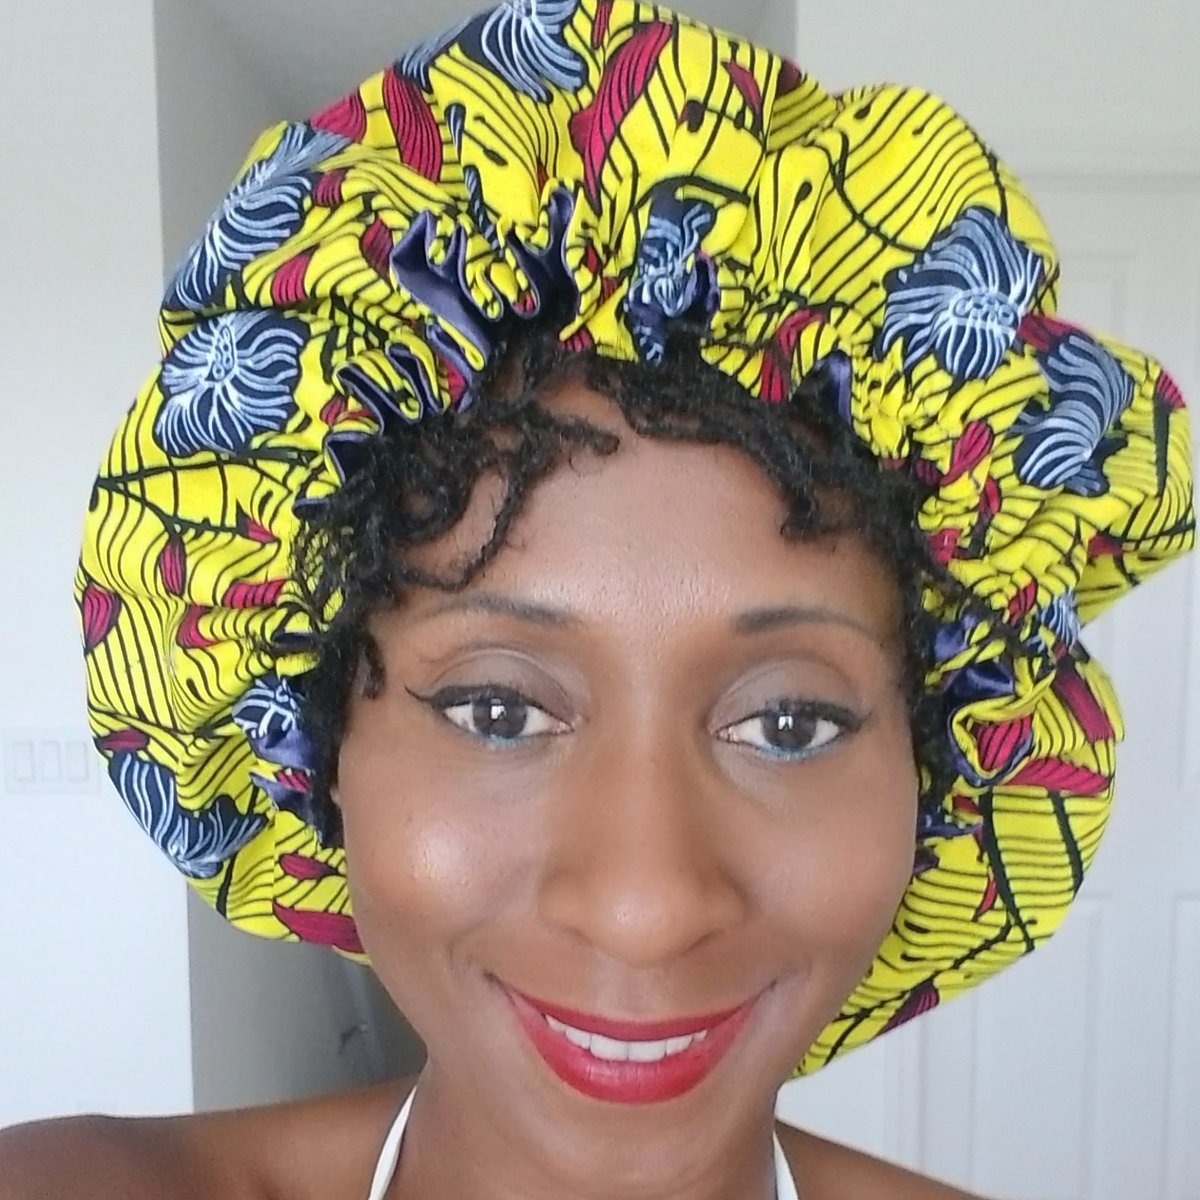 Black owned! #bonnetbhabie beautiful African print hair bonnets and mask. Order one today. https://etsy.me/2zMd1ZS #blackbusinesses #mask #hairbonnets #satin #facemask #buyblack #africanprint pic.twitter.com/LDuvCDNlJA